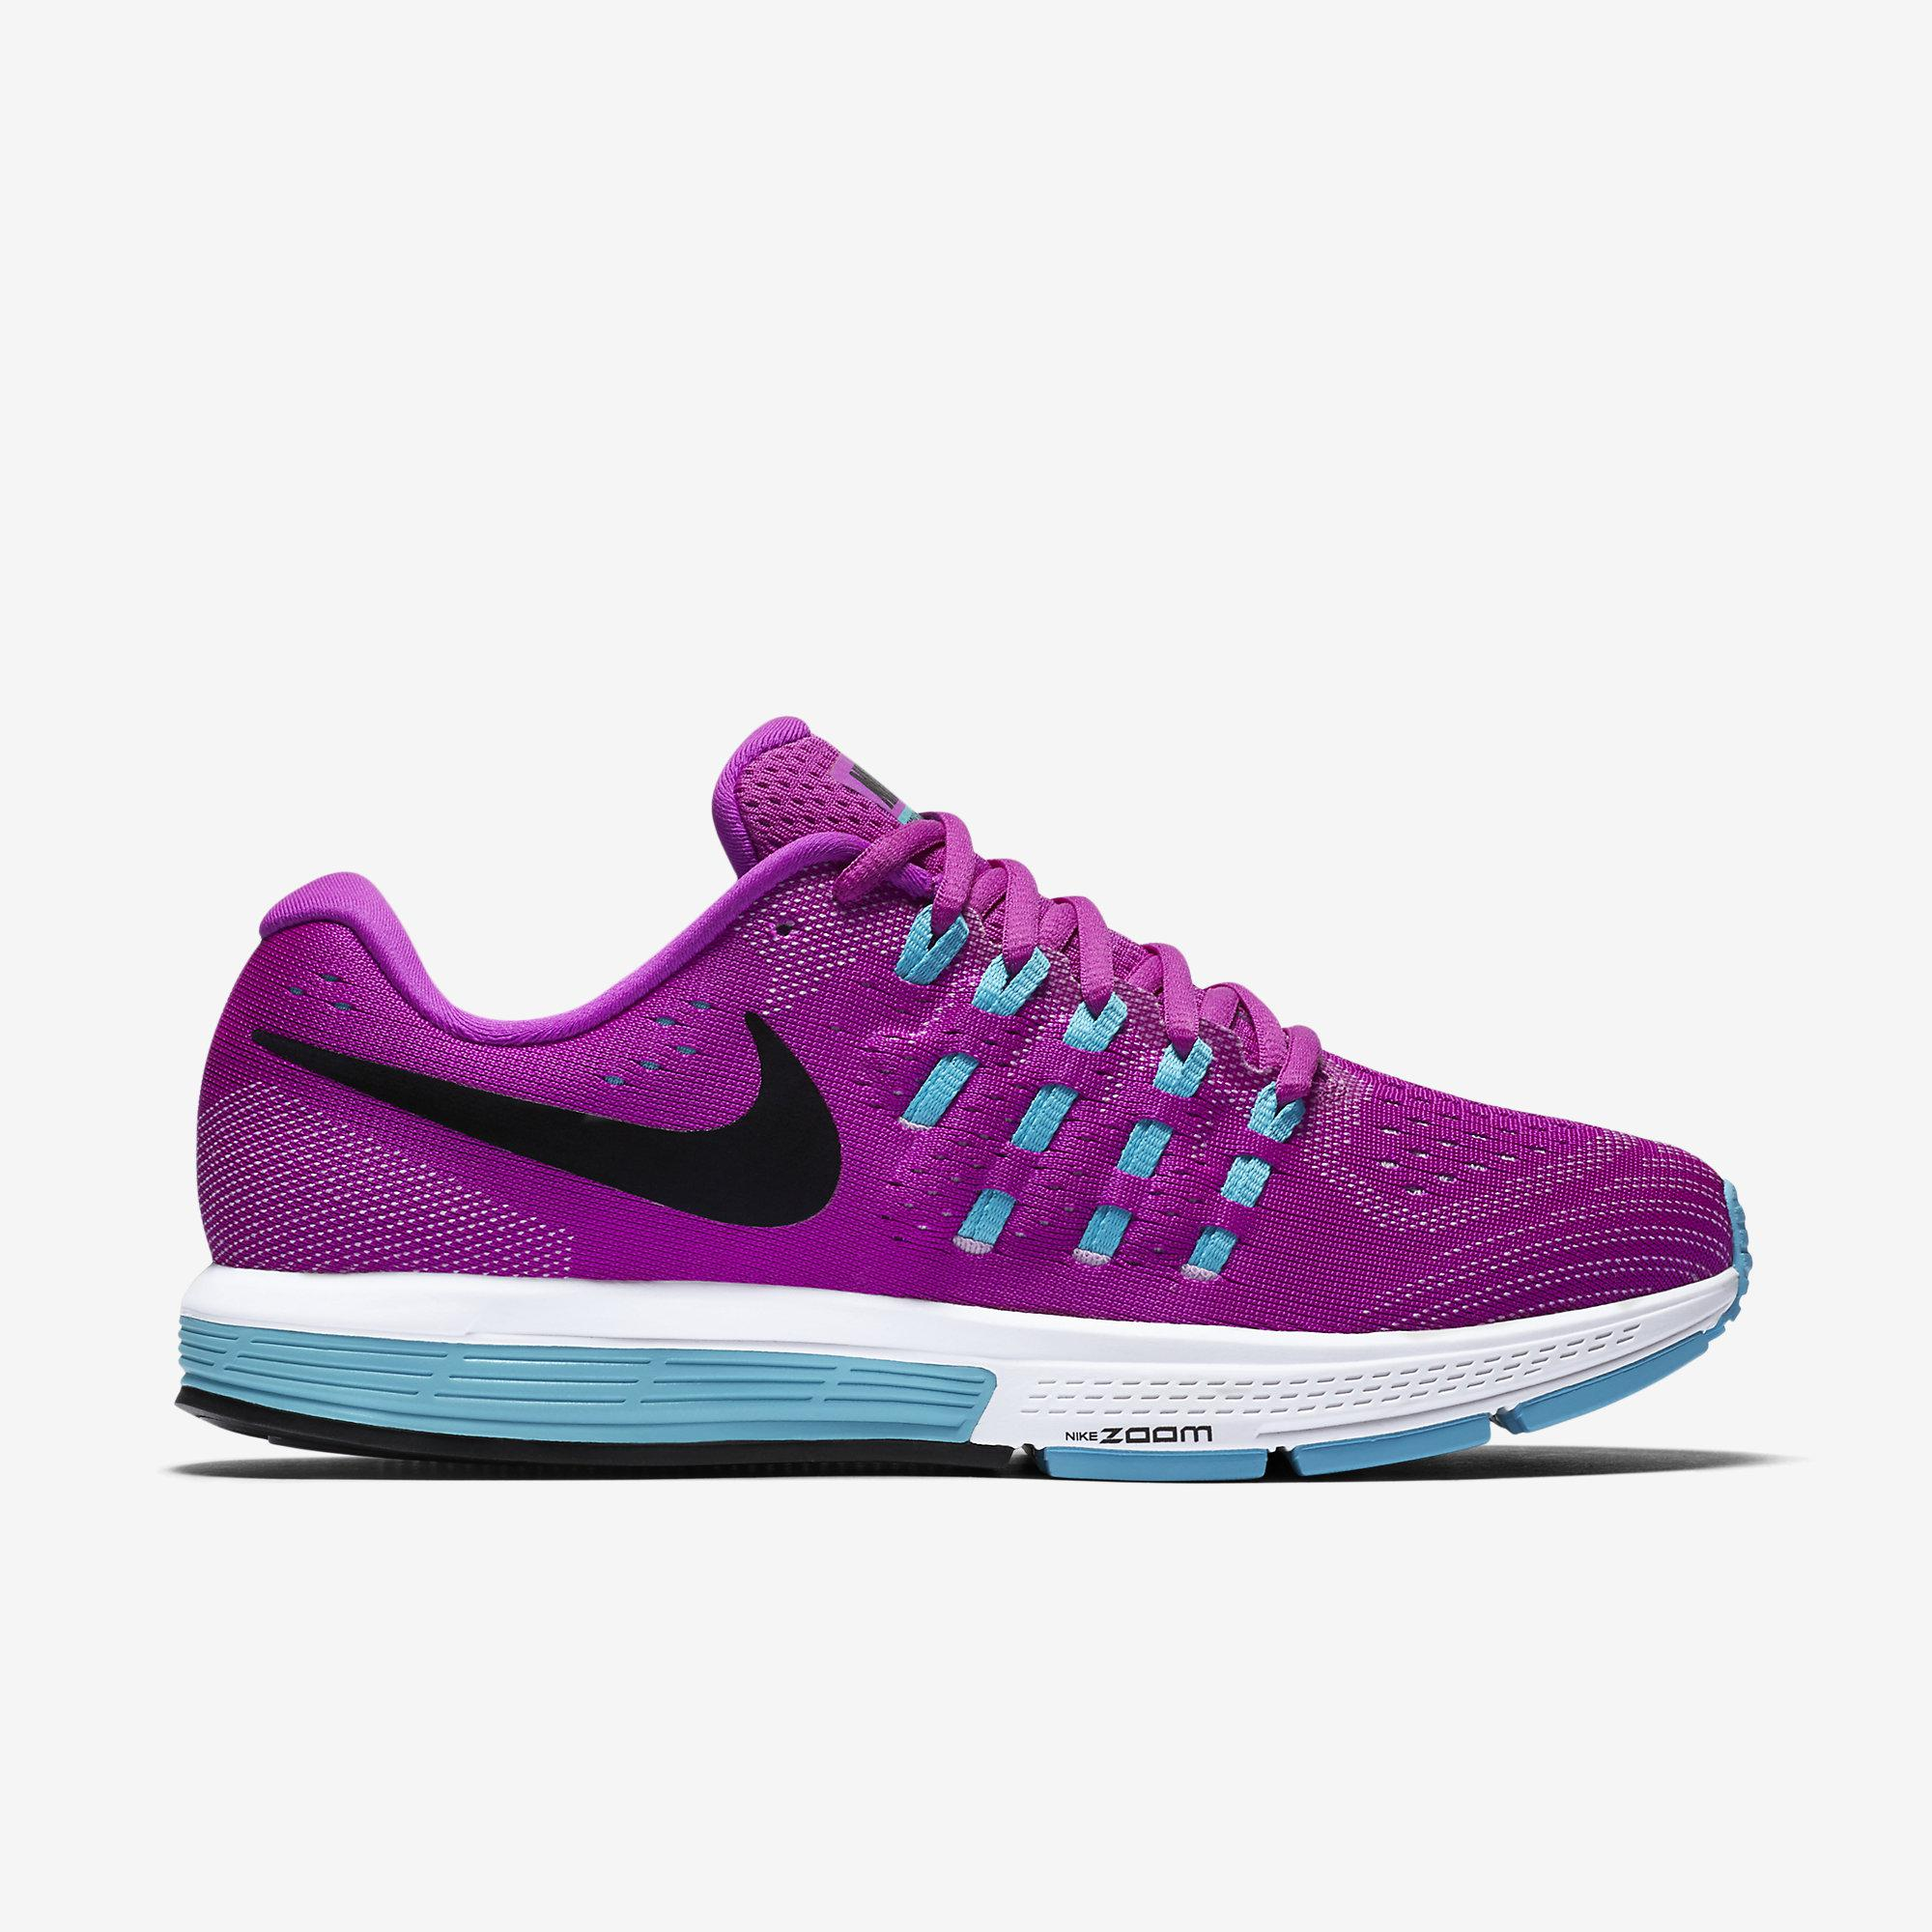 1ad2304b470 Nike Womens Air Zoom Vomero 11 Running Shoes - Purple - Tennisnuts.com